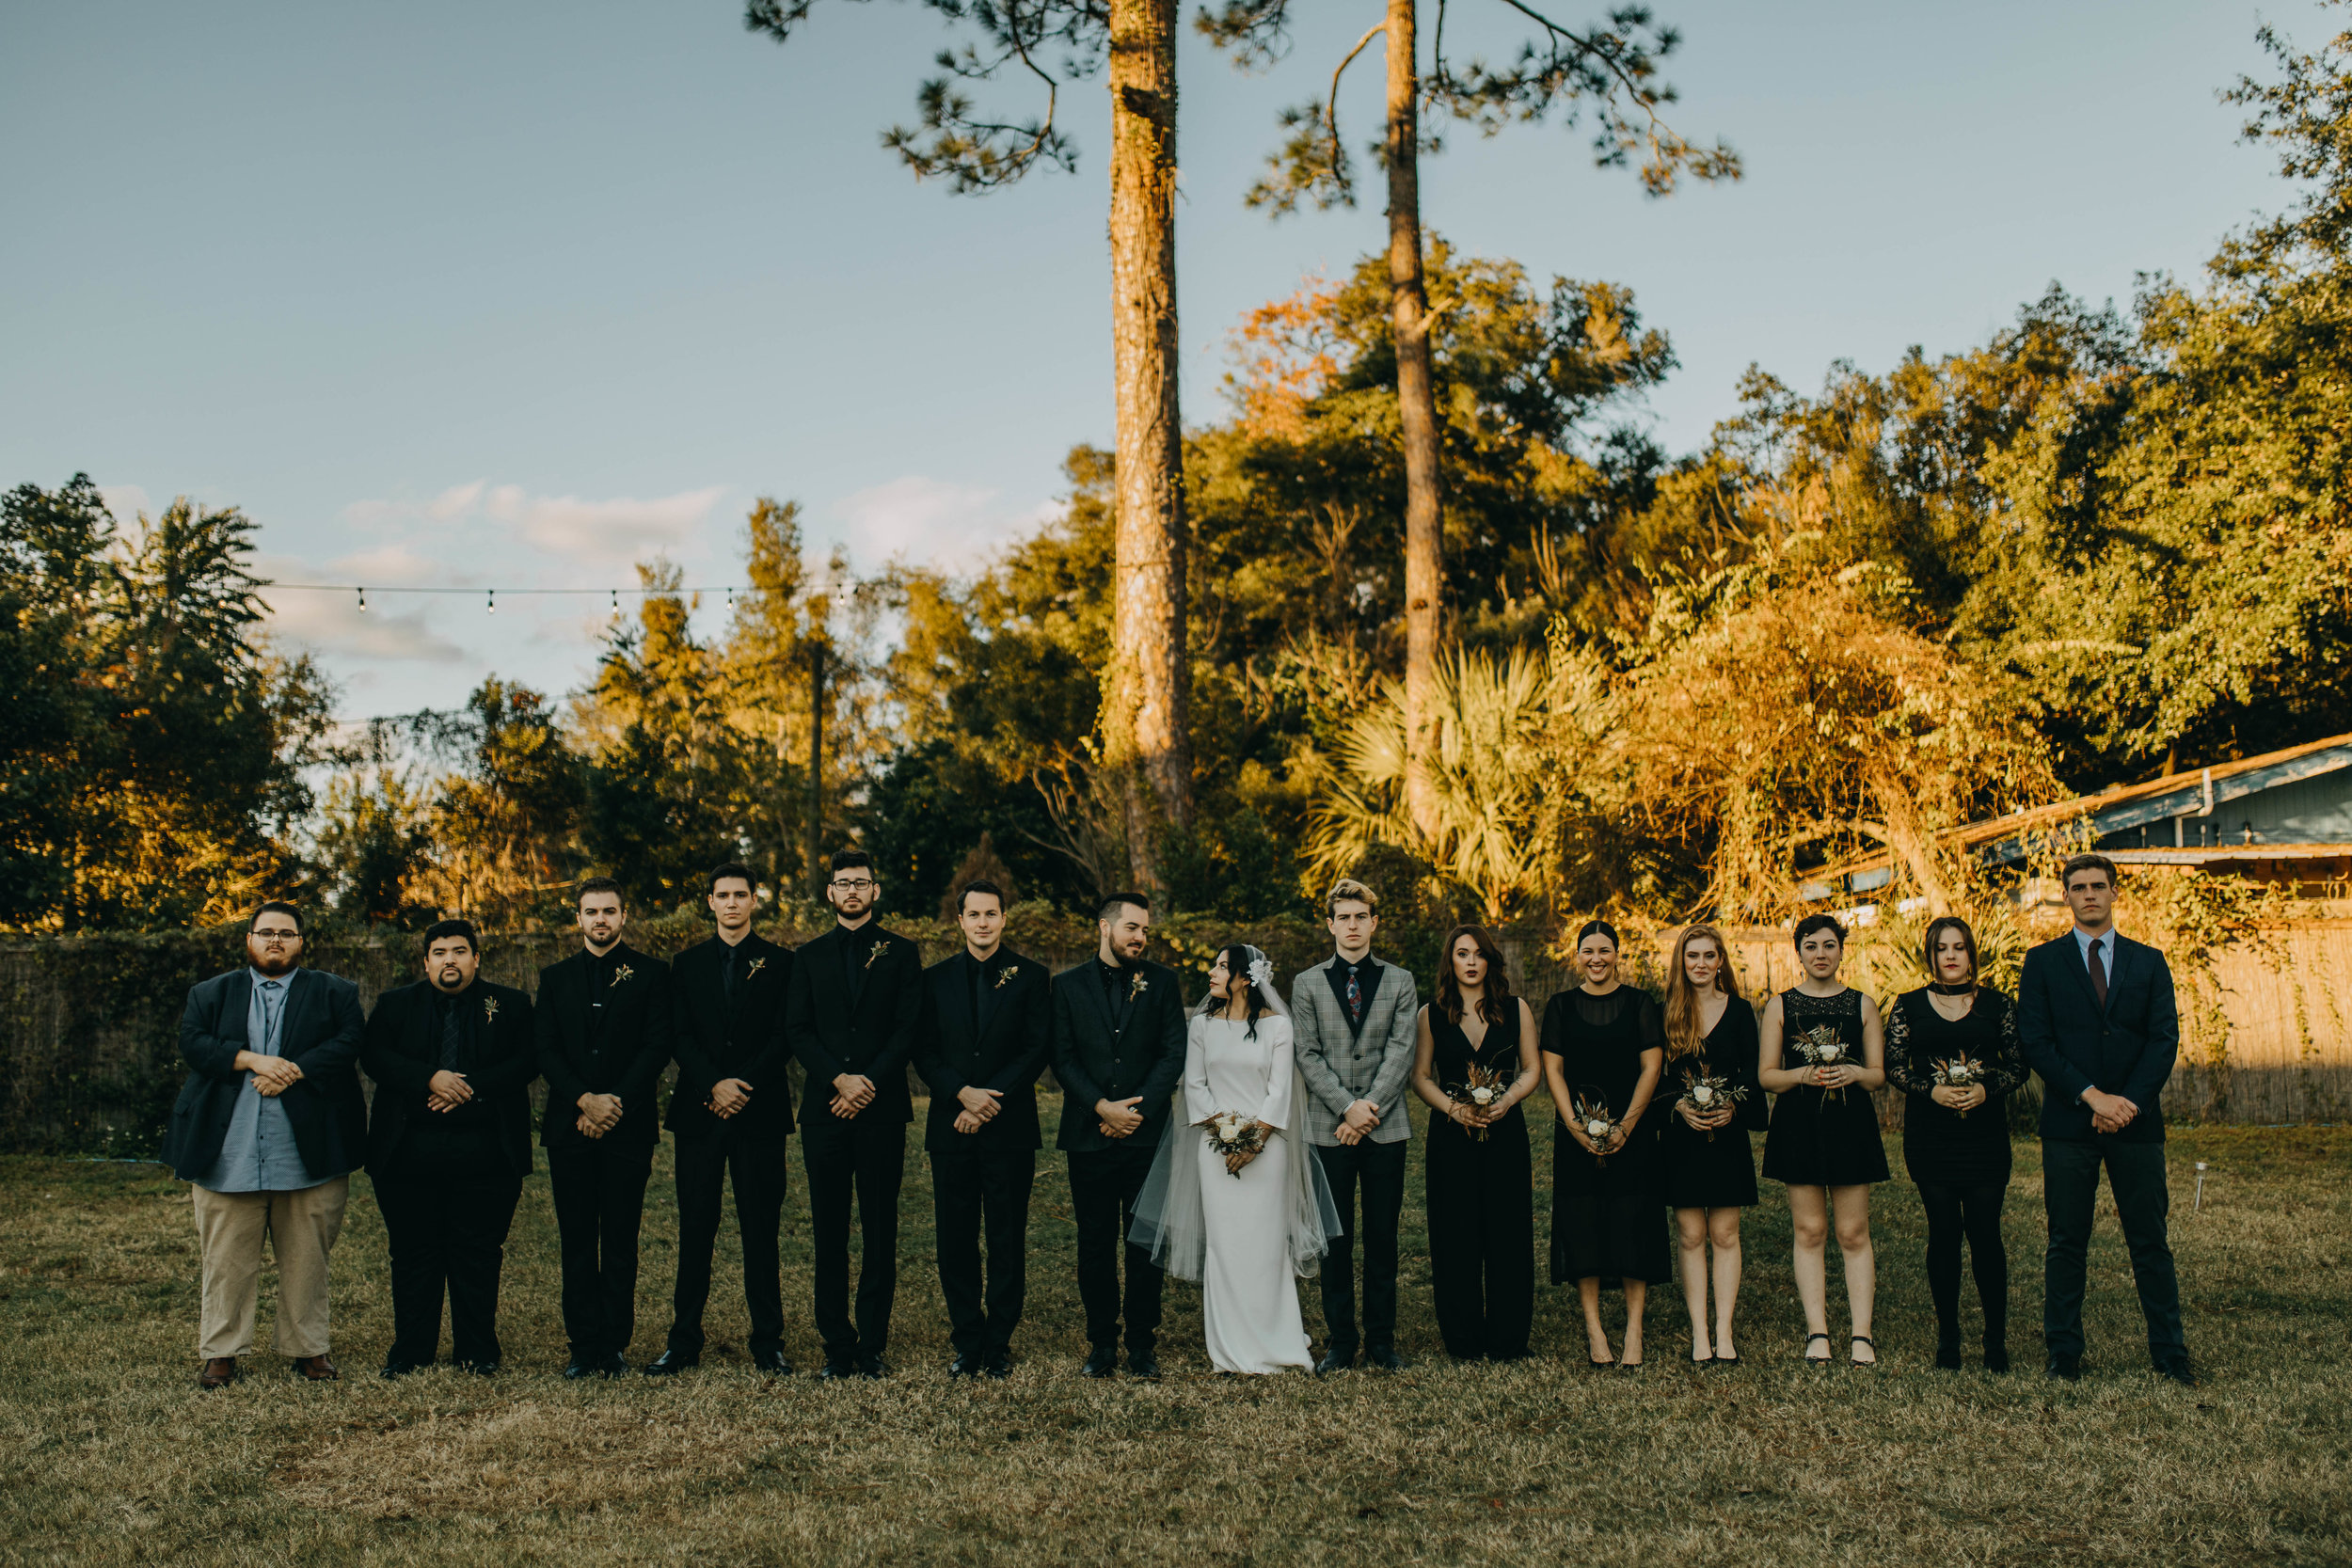 Bridal Party Pictures | American Traditional Tattoo Themed Eco Friendly Dark Florida Wedding